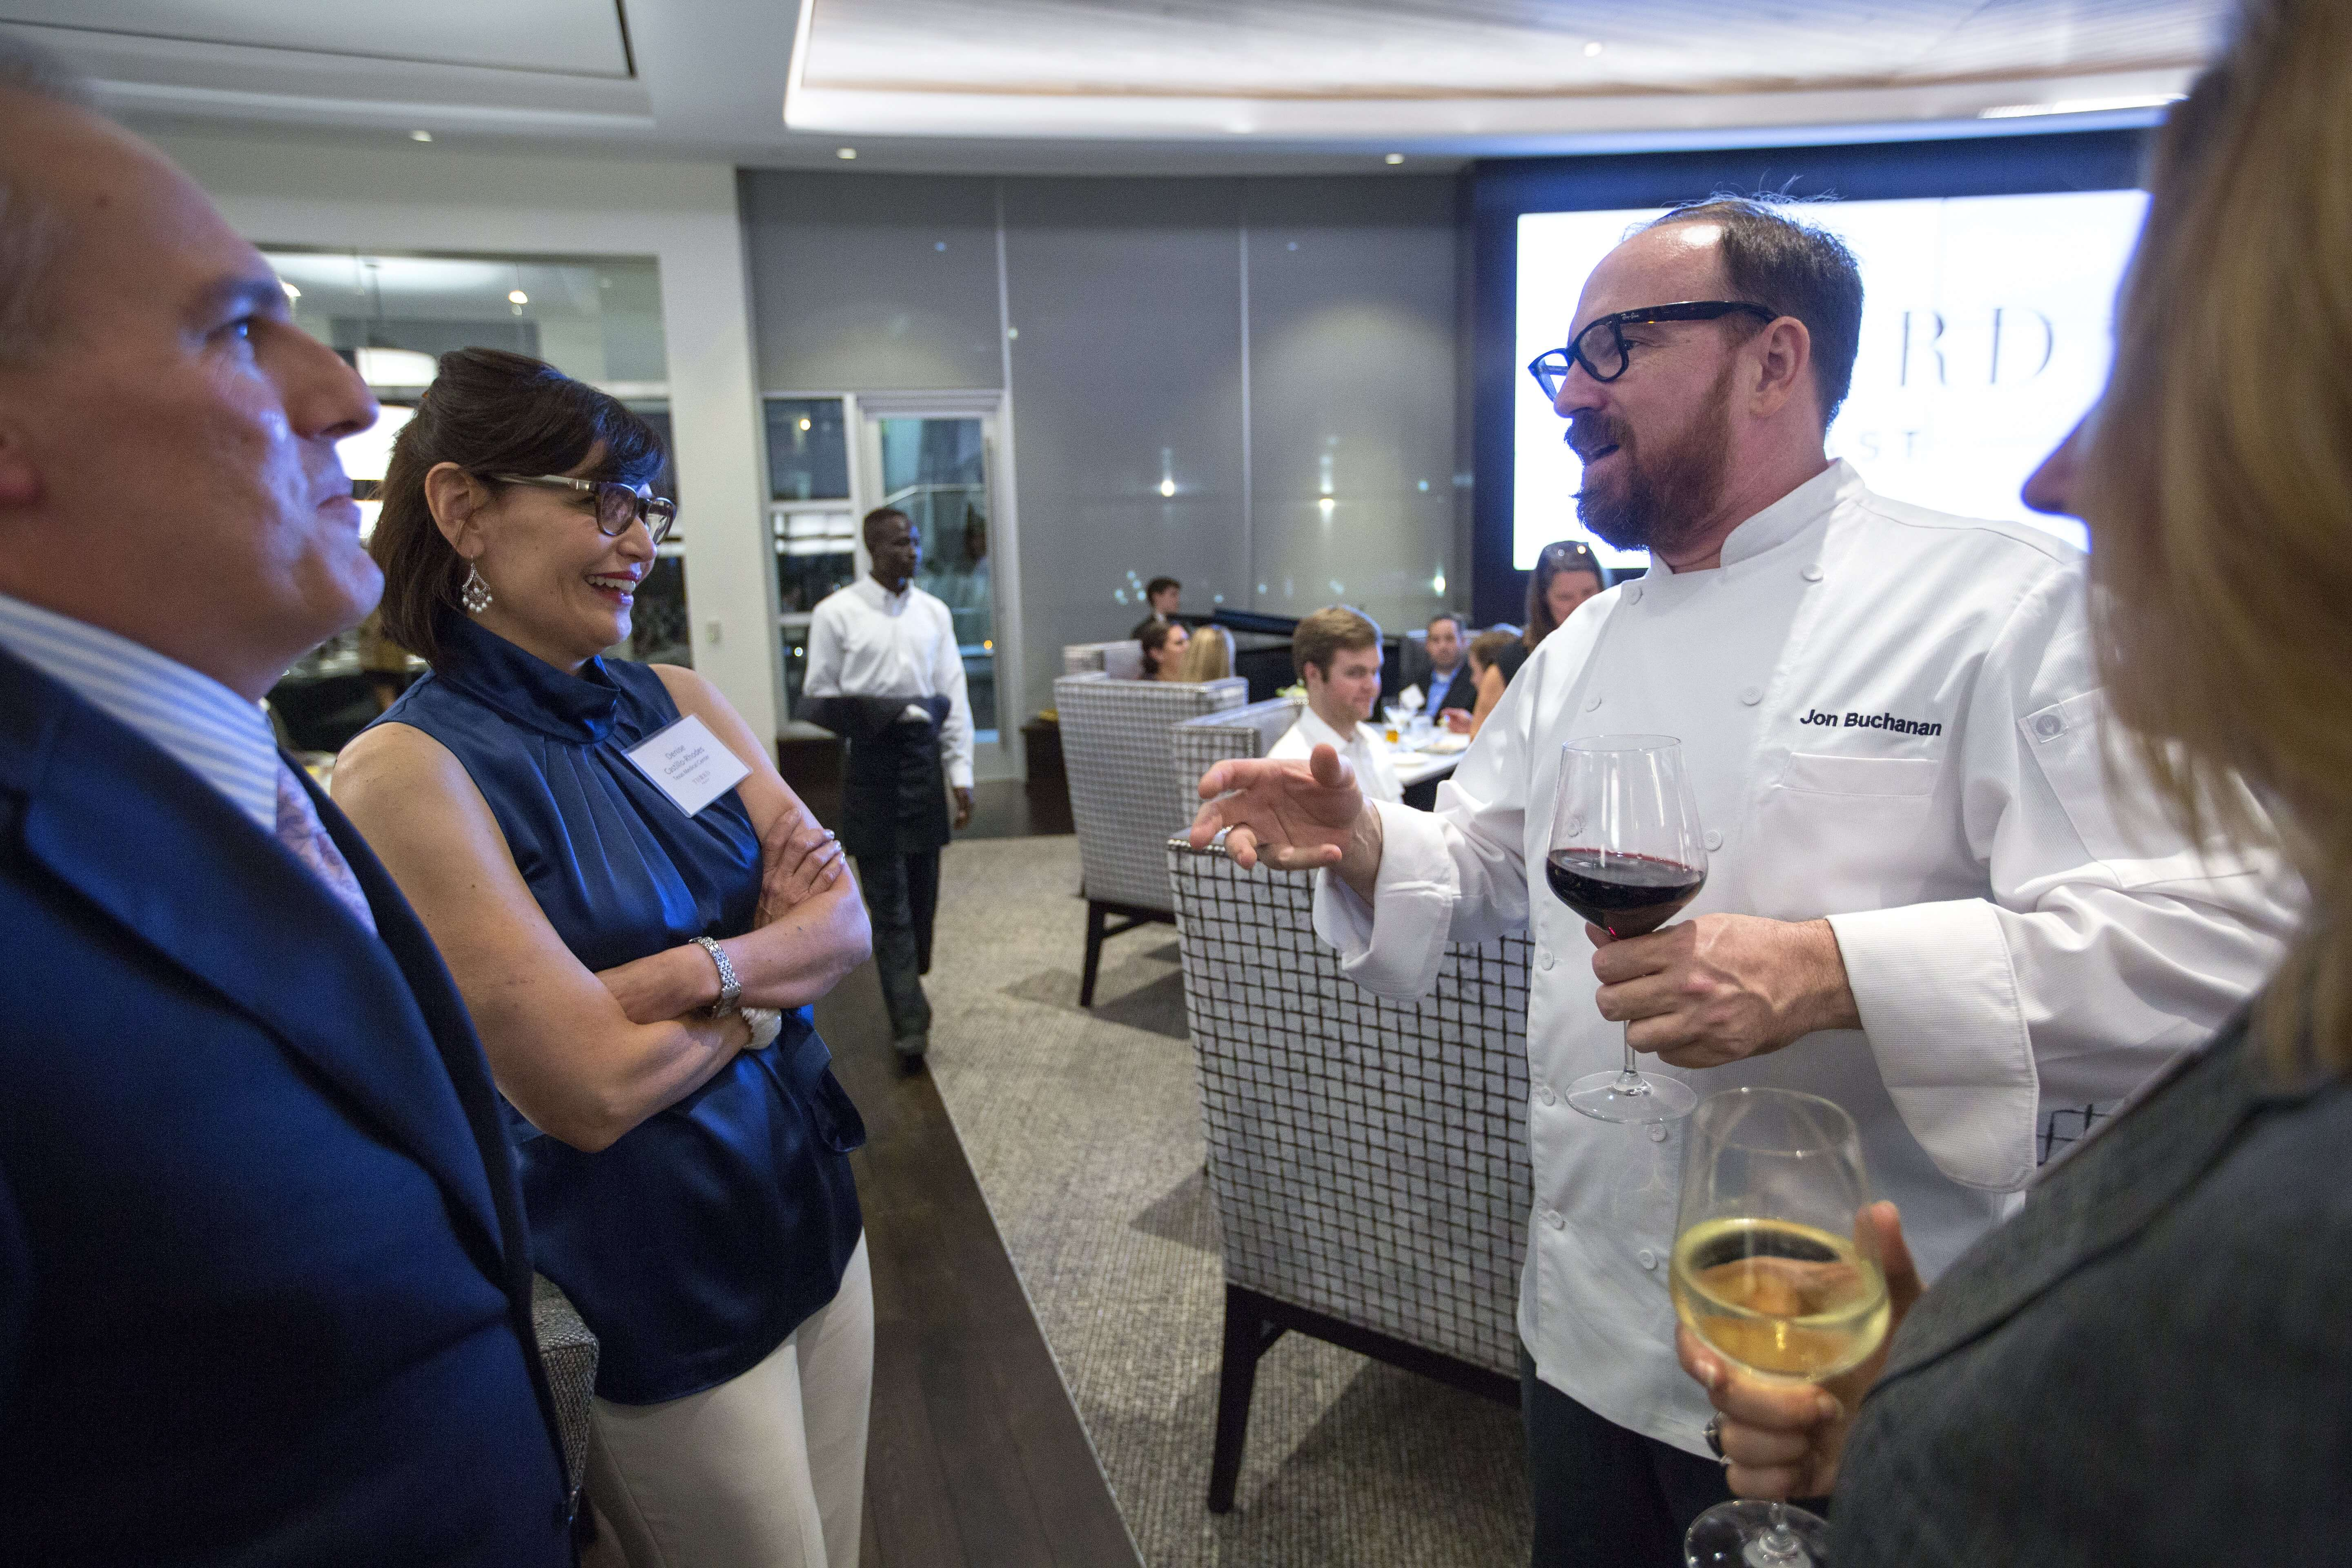 Executive chef Jon Buchanan speaks with Texas Medical Center chief financial officer at the grand opening of Third Coast.